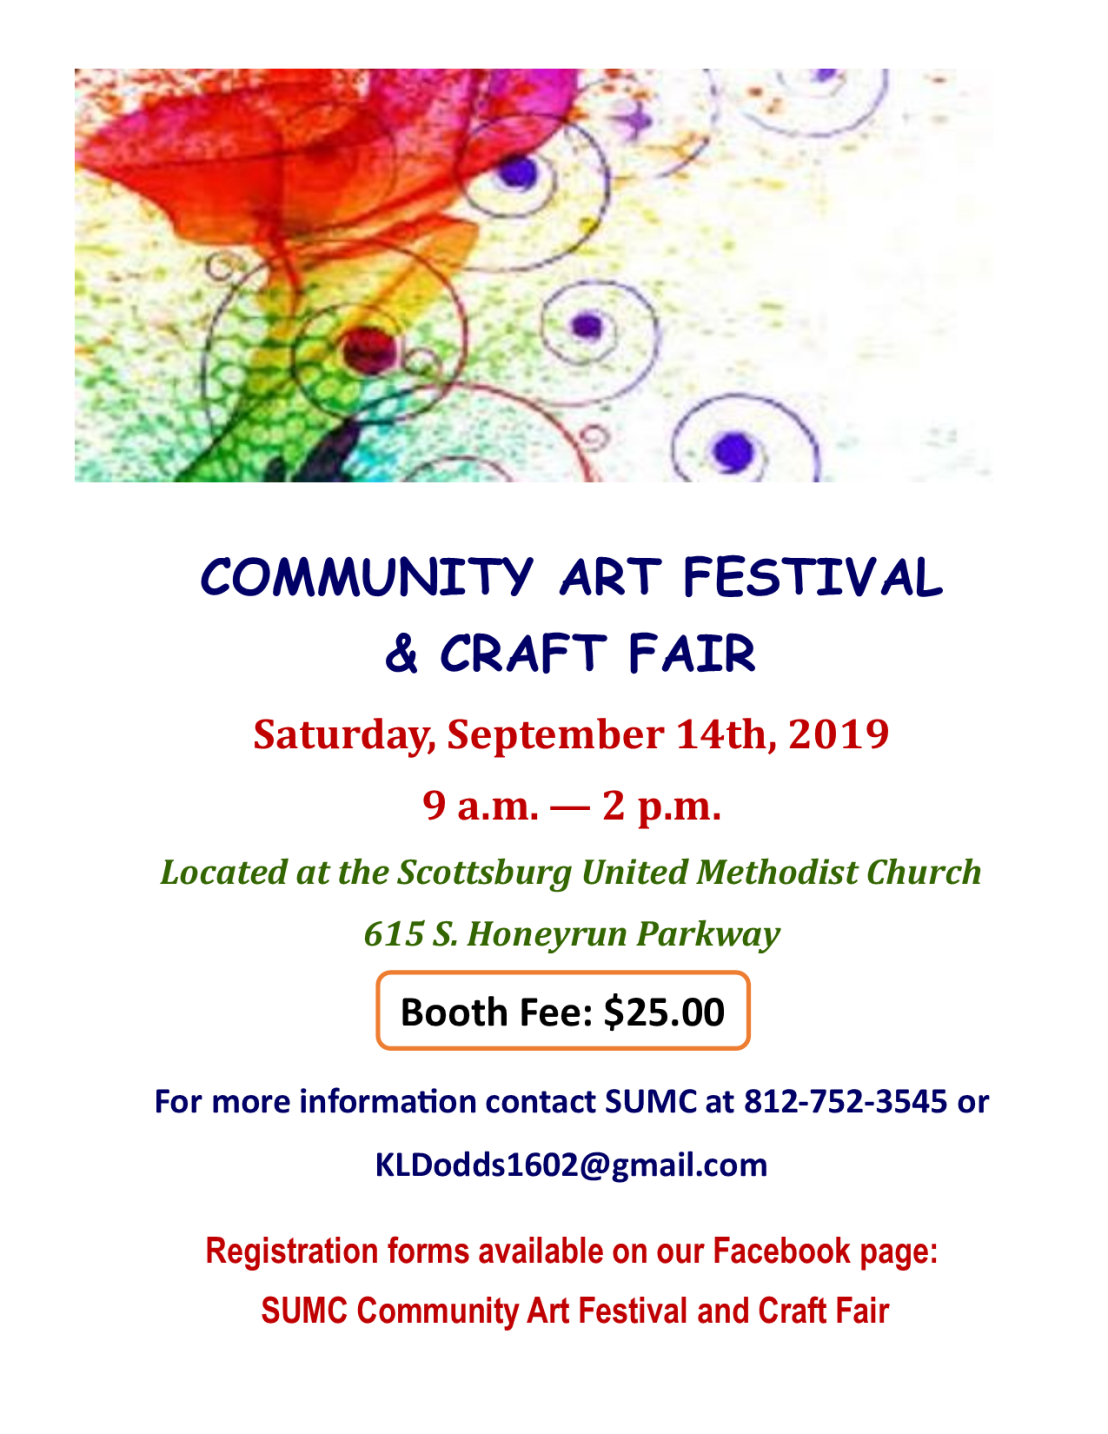 Art Festival Craft Fair flyer 2019 updated